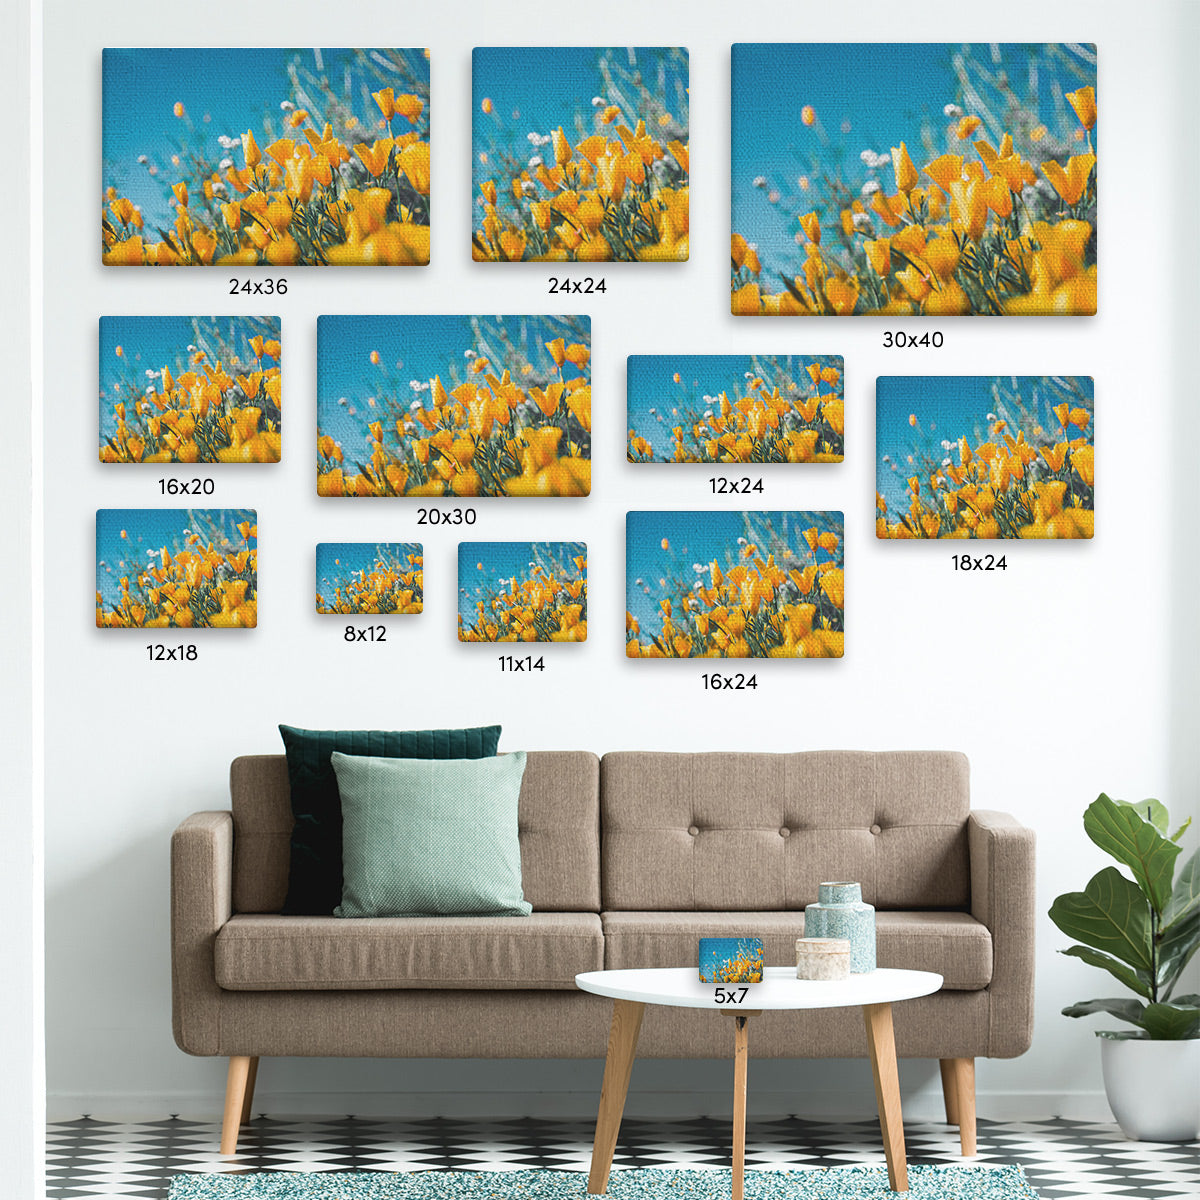 Standard Canvas Print Sizes Comparison Photo